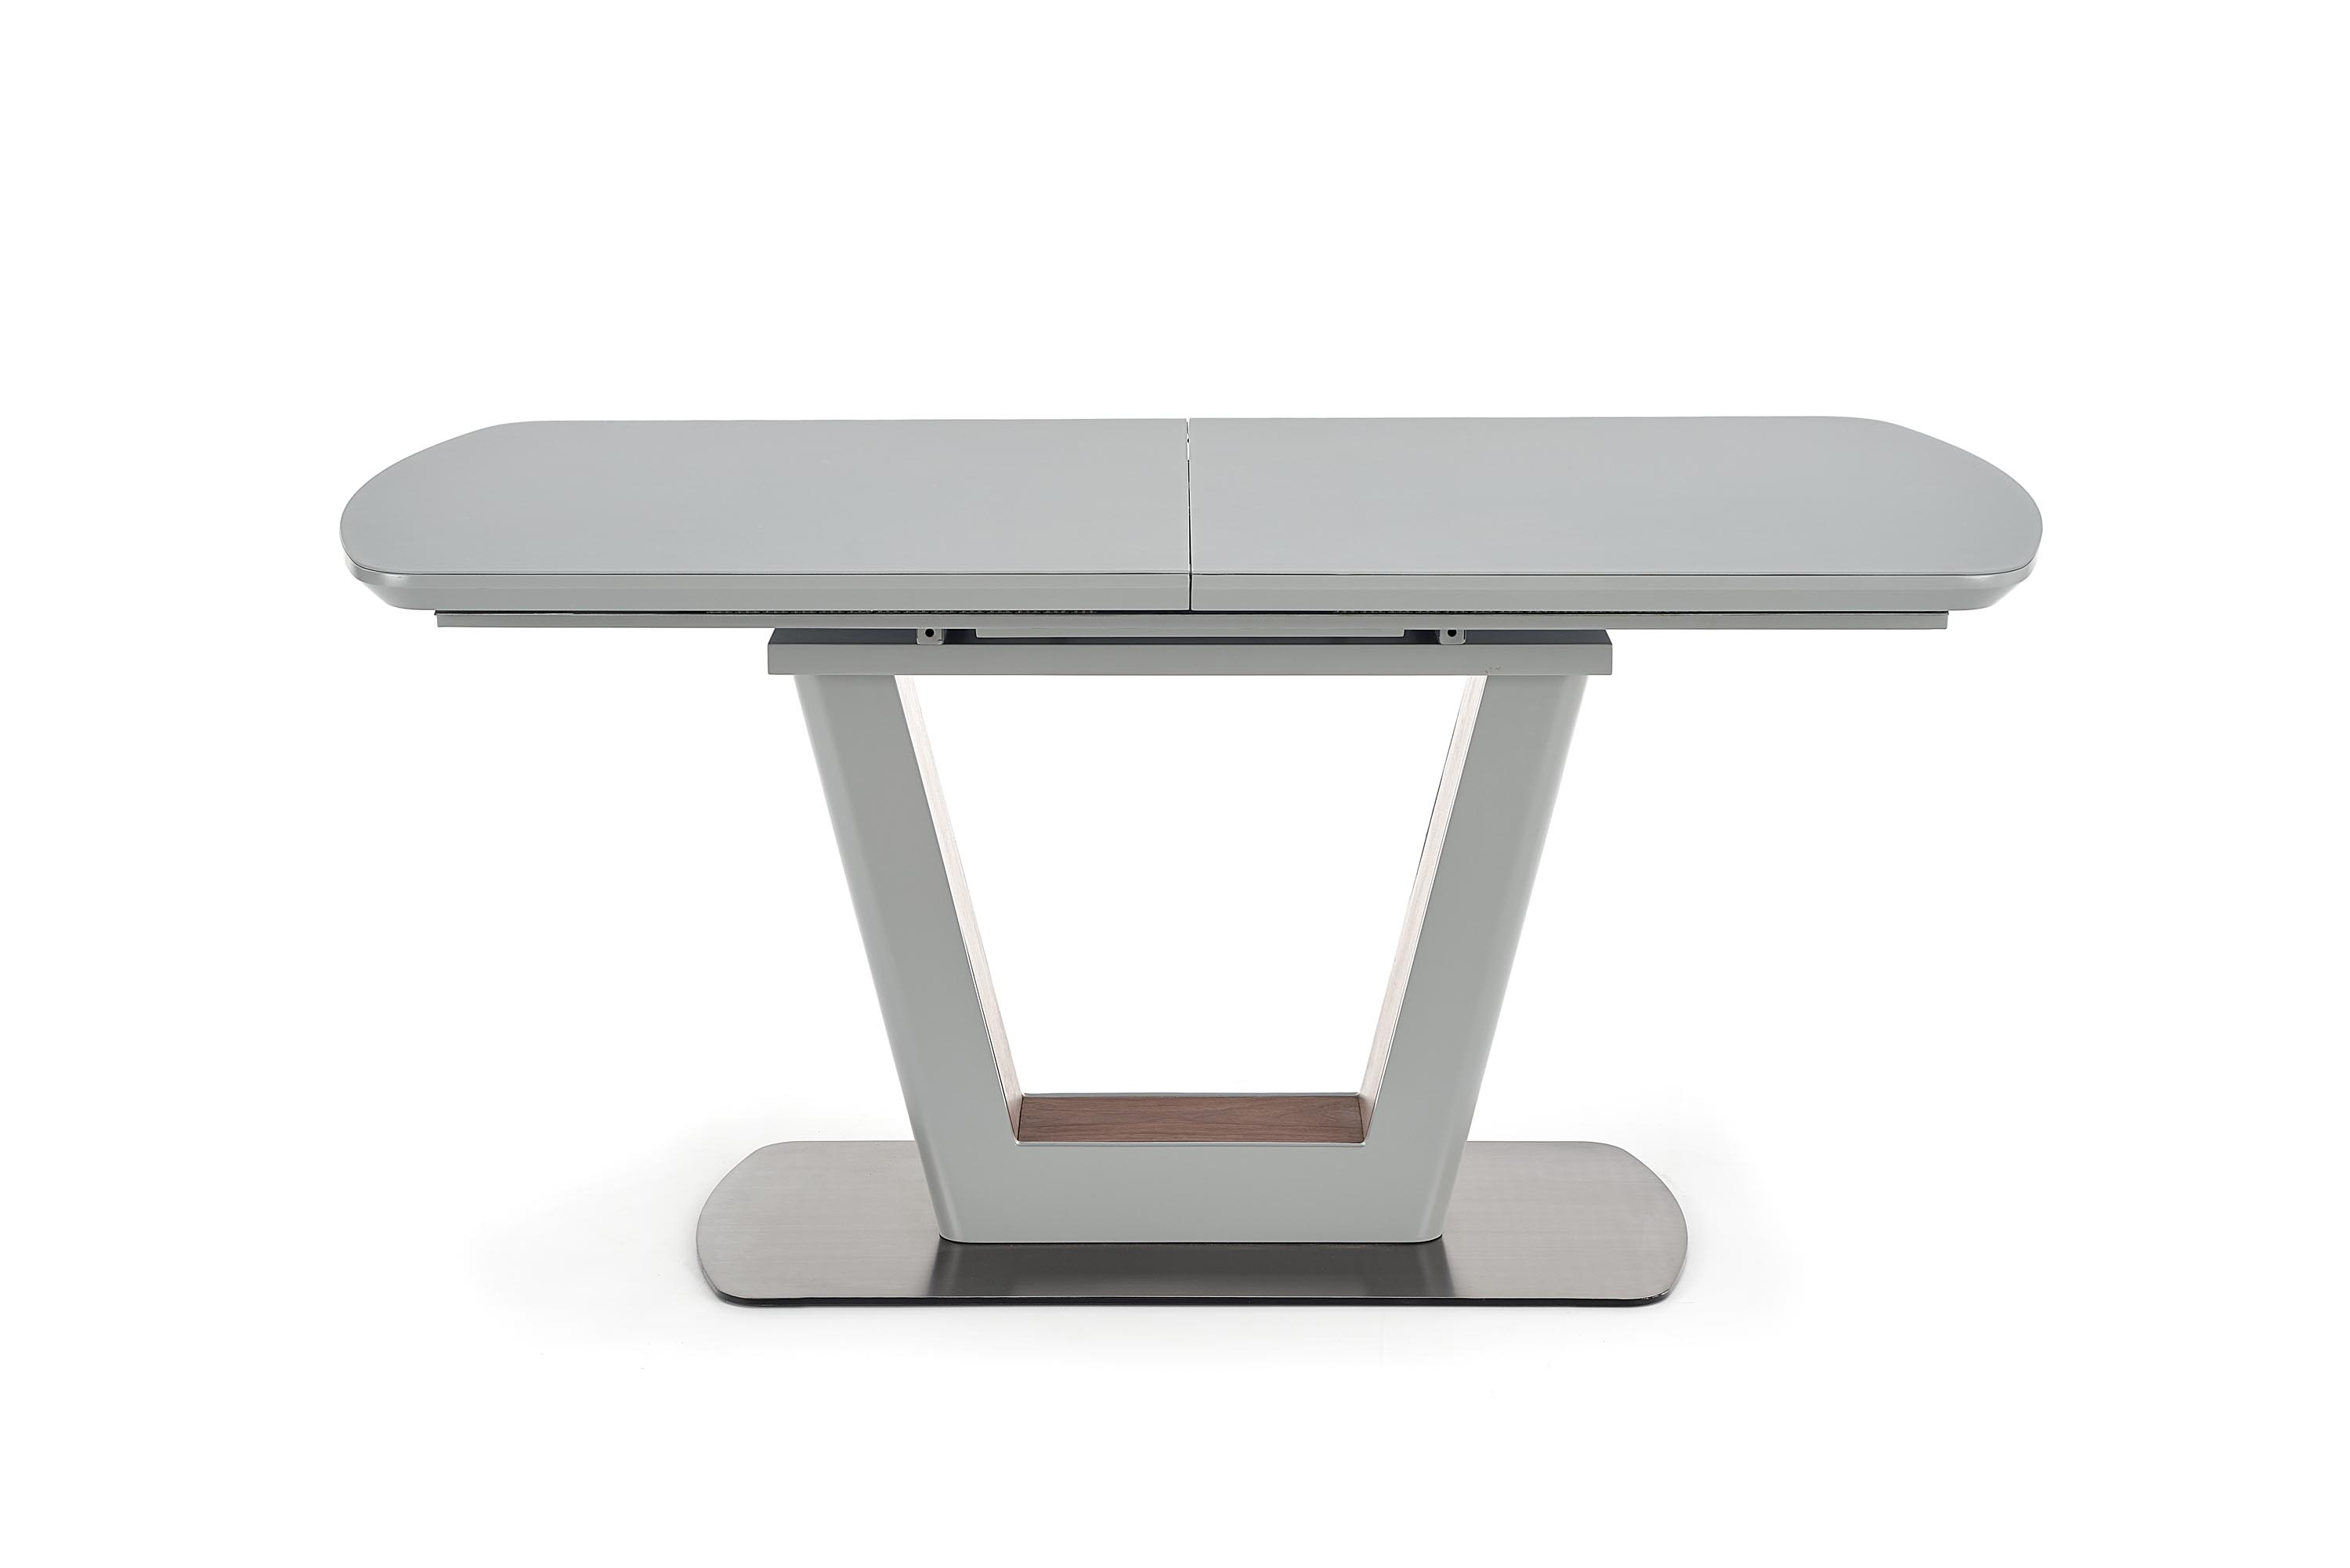 Masa extensibila din sticla si MDF Bilotti Light Grey / Walnut, L160-200xl90xH76 cm imagine